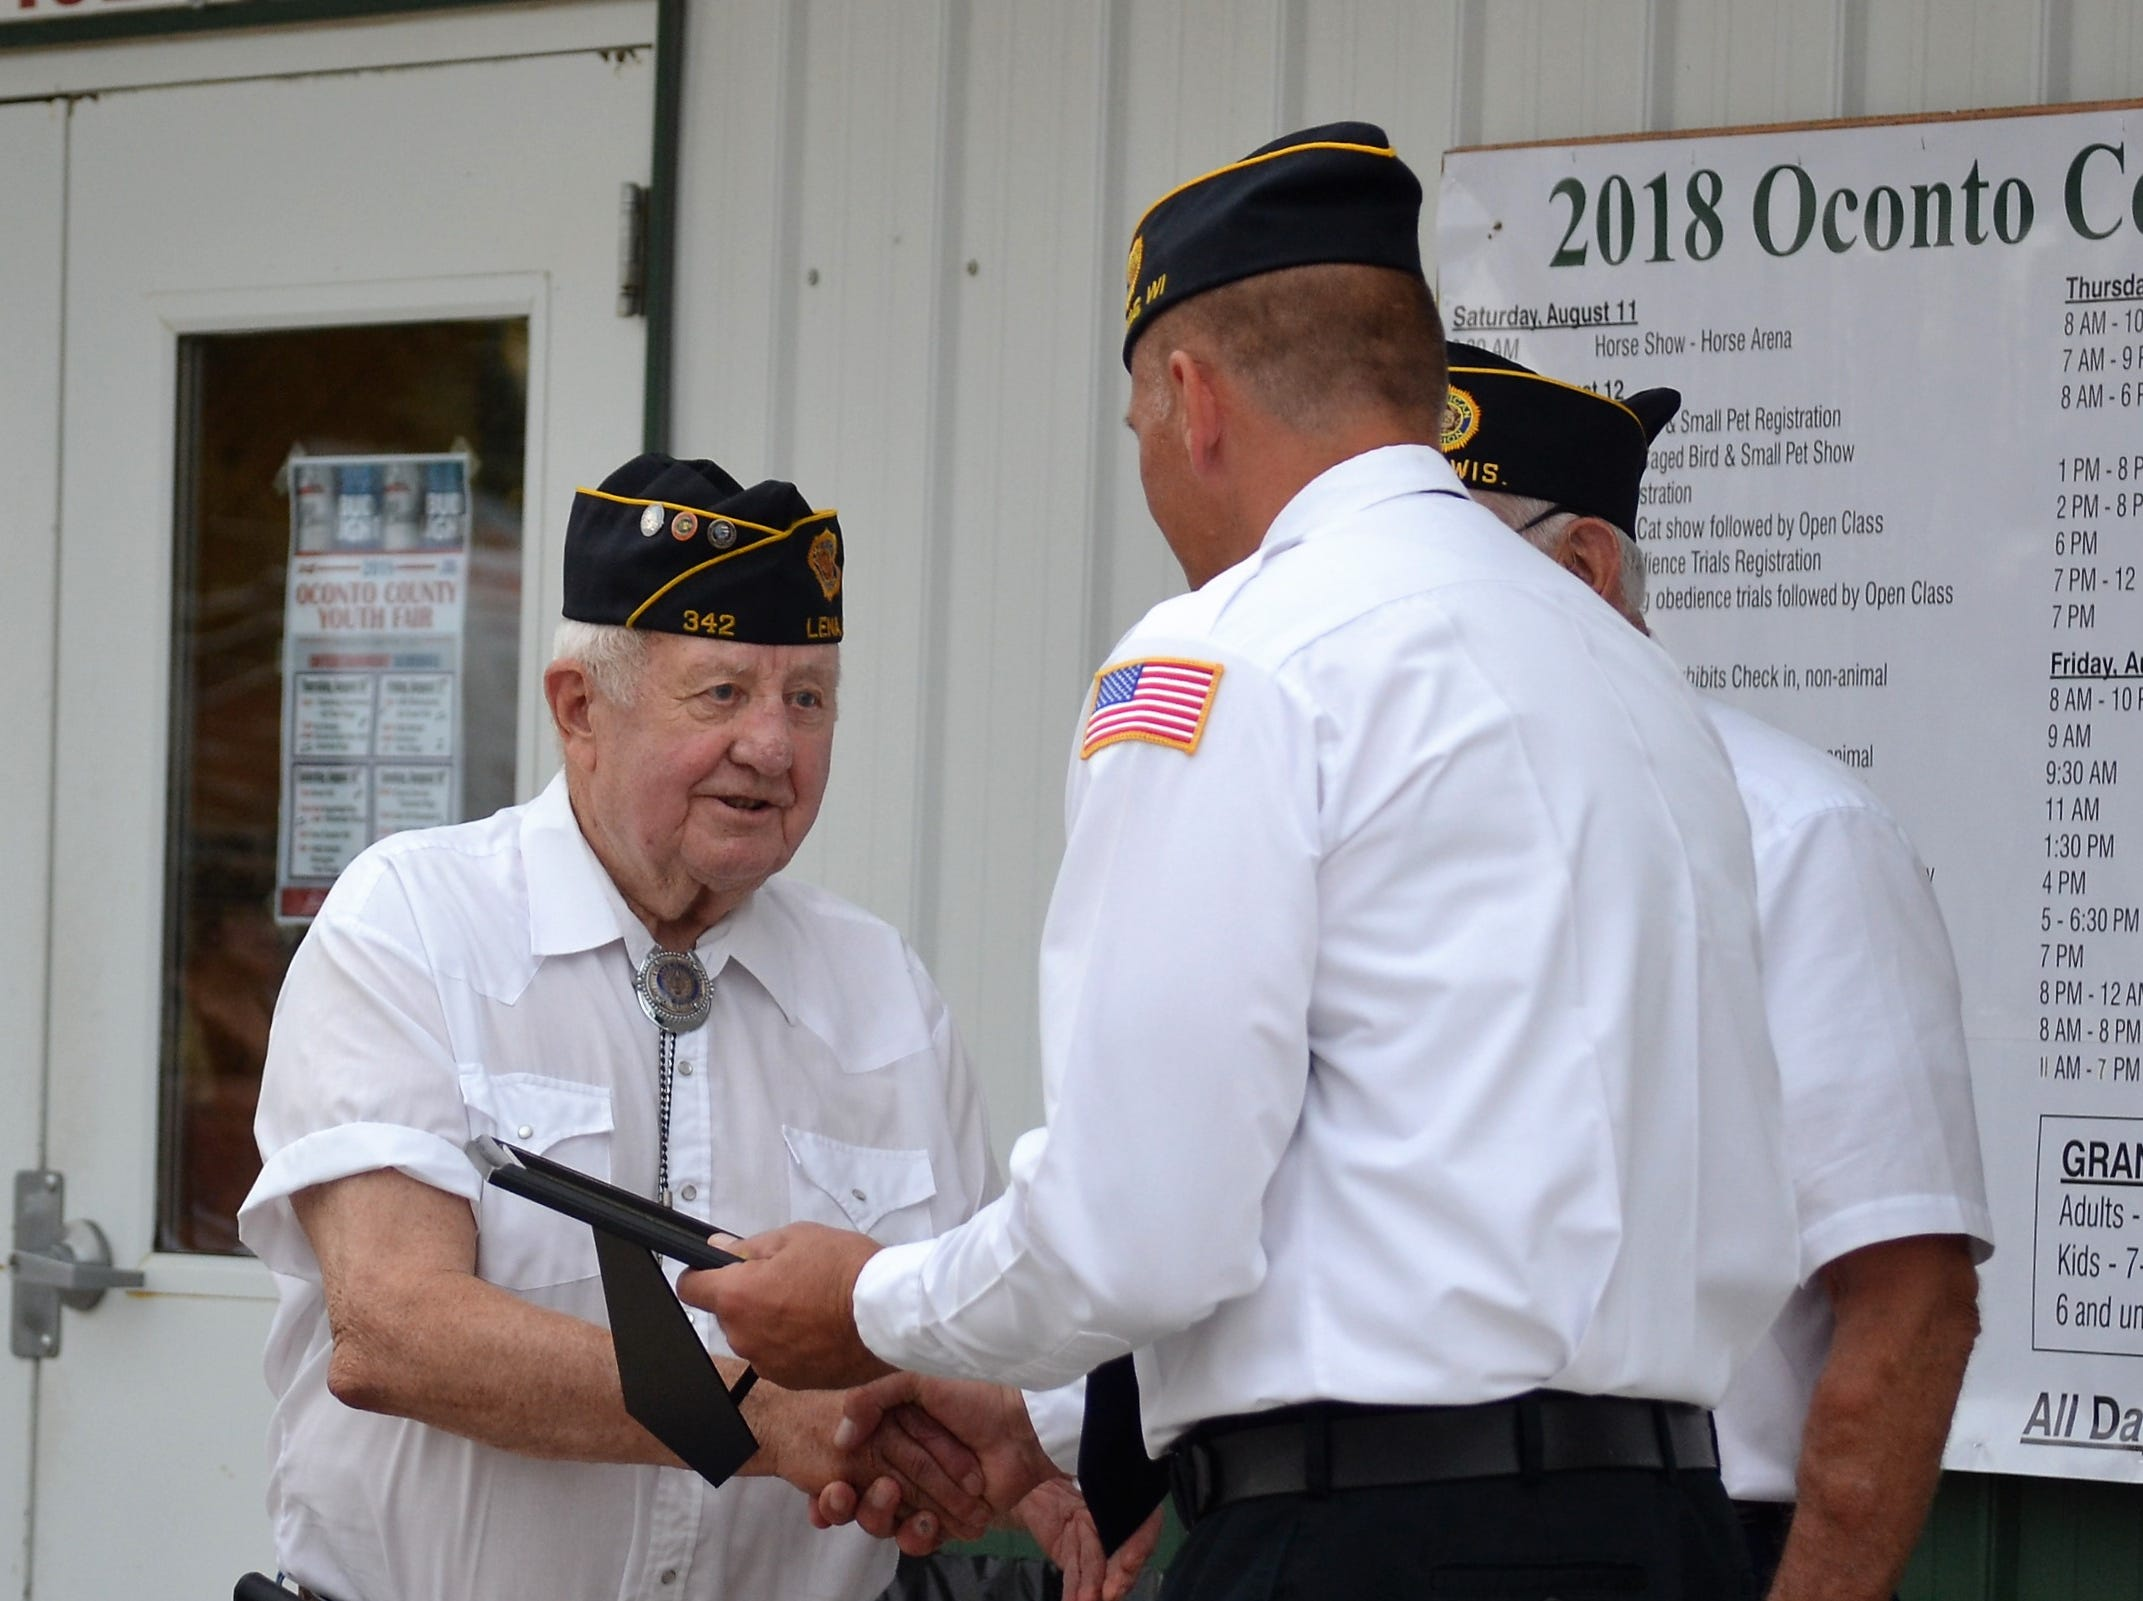 Elmer Ragen, left, shakes hands with Oconto County Veterans Service Officer Ron Christensen, after Ragen was recognized for his 30 years of service as president of the Oconto County United Veterans Council, during the opening ceremony at the Oconto County Fair on Thursday, Aug. 16.  Ragen started the group, made up of representatives from the local veterans groups across the county. The council meets at least twice a  year and coordinated the opening ceremony at the fair for most of its formation. Ragen is a former county veterans service officer and current member of the Oconto County Board, is from Little Suamico.